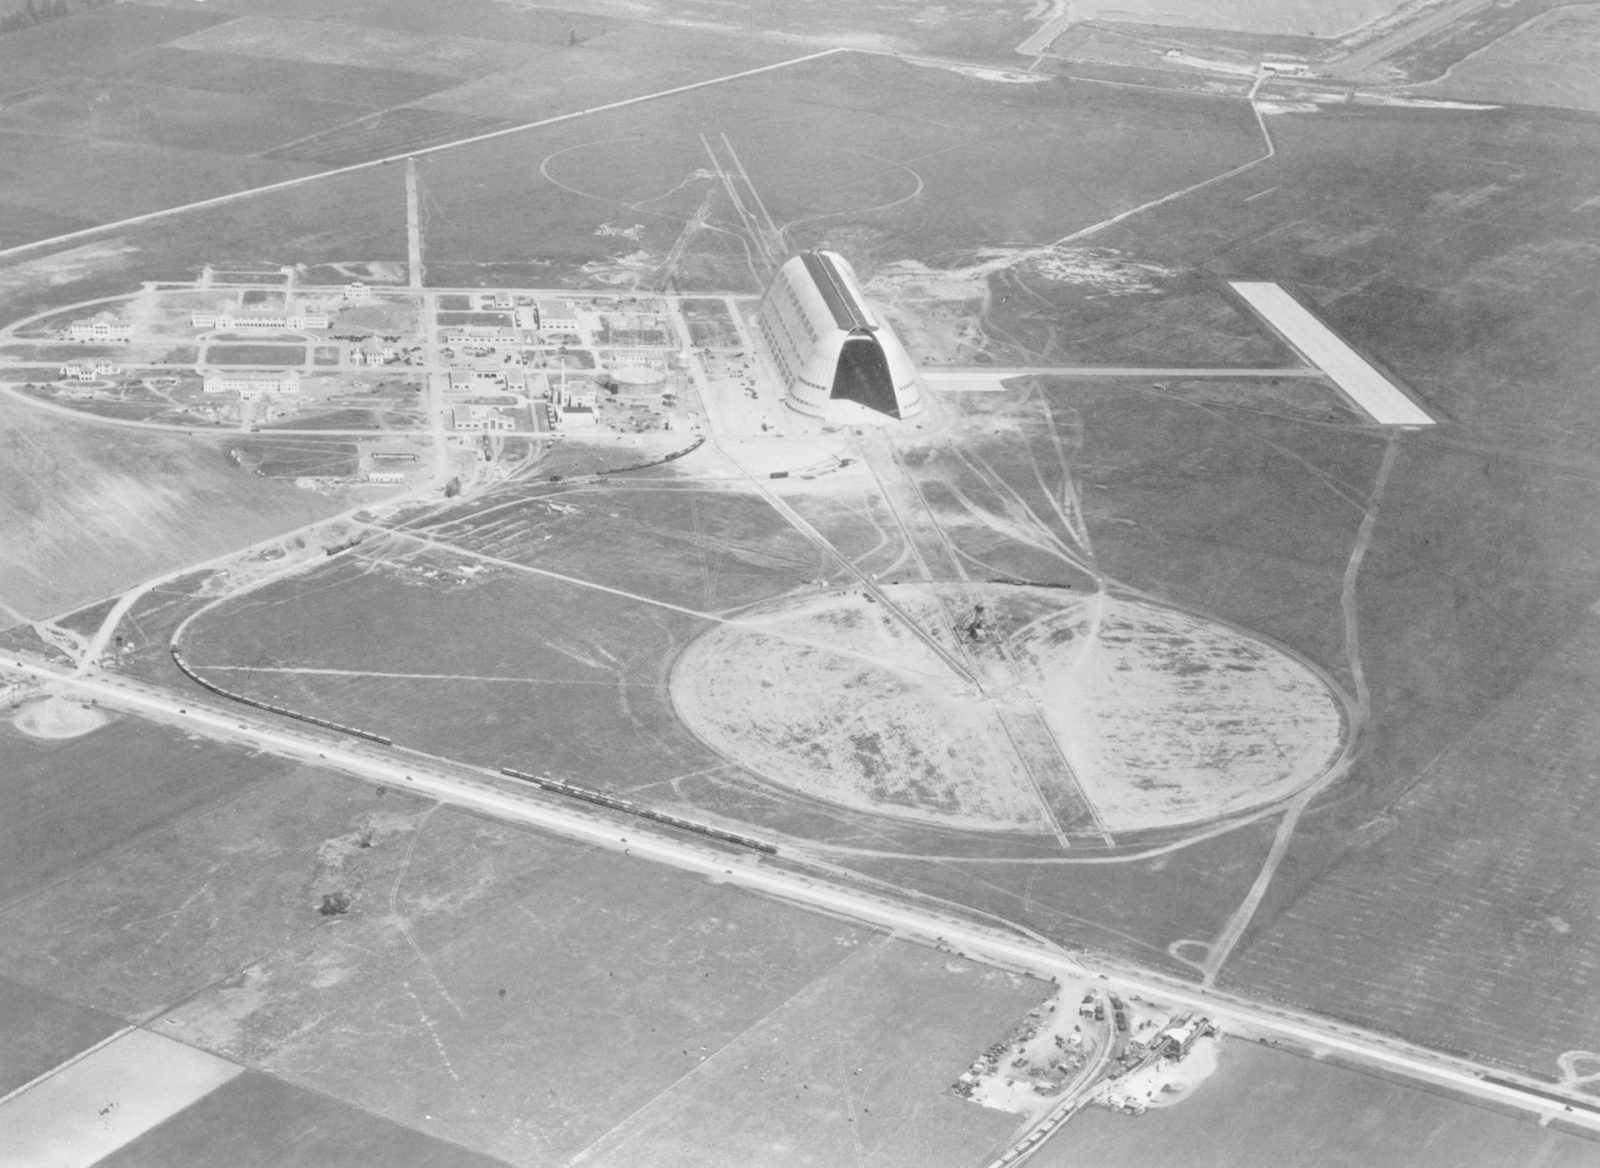 NAS Sunnyvale Station, Mt. View CA Looking North  (Moffett Field) at the top of the image the Kingsport Plunge and the dock can be seen.  Thought the plunge closed in the late 20's  the structure is still standing. ARC-1933-A93-0073-3